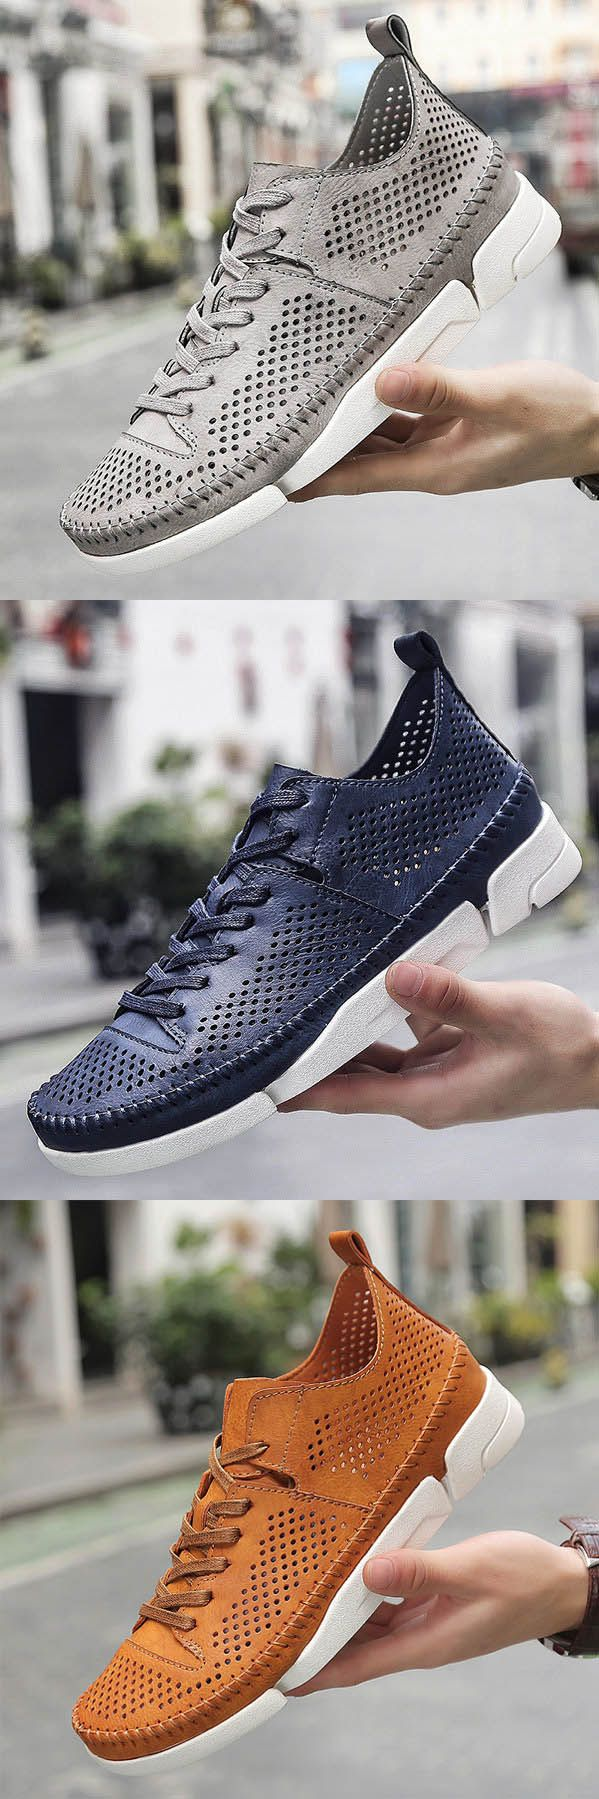 Men Hand Stitching Hollow Out Breathable Skateboarding Shoes Casual Sneakers